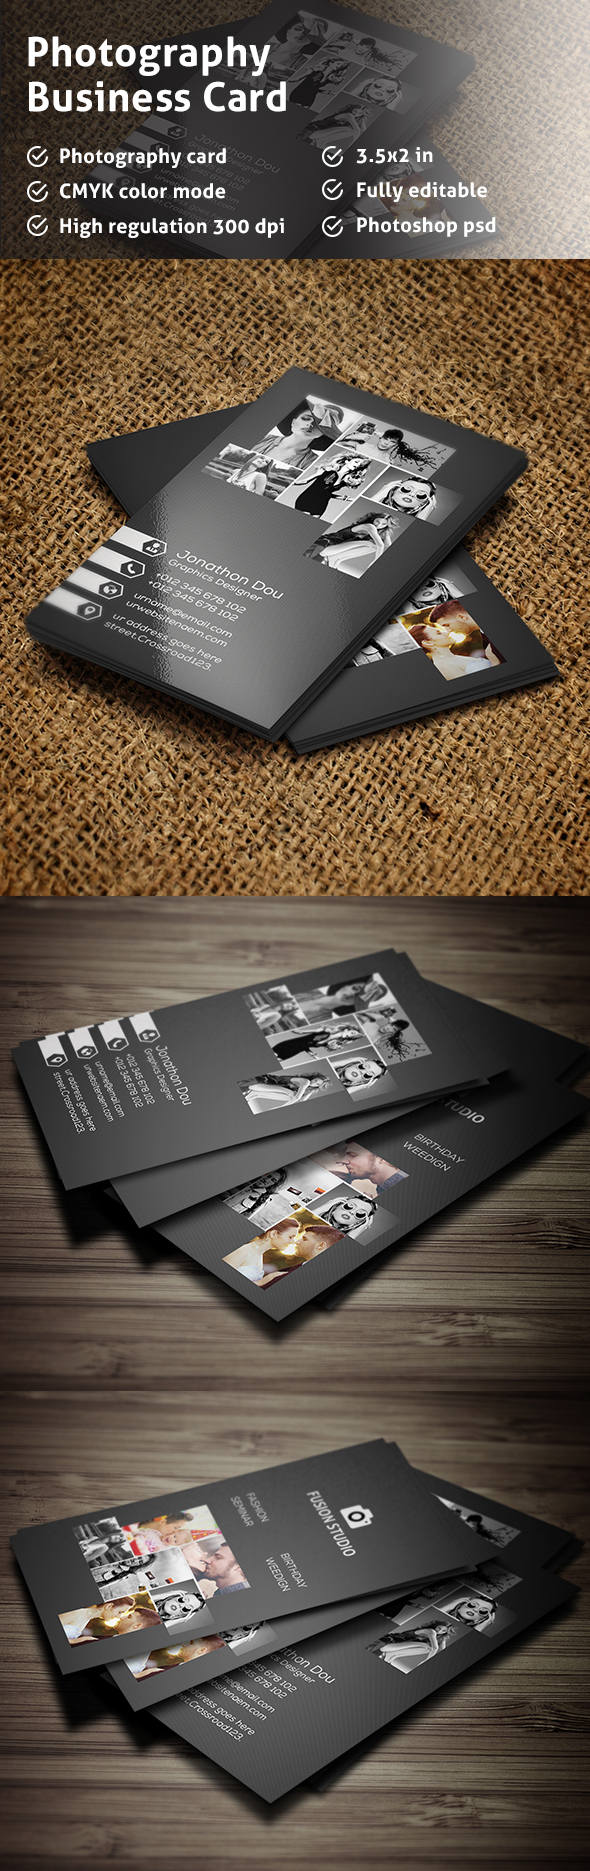 Free Photography Business Card on Behance